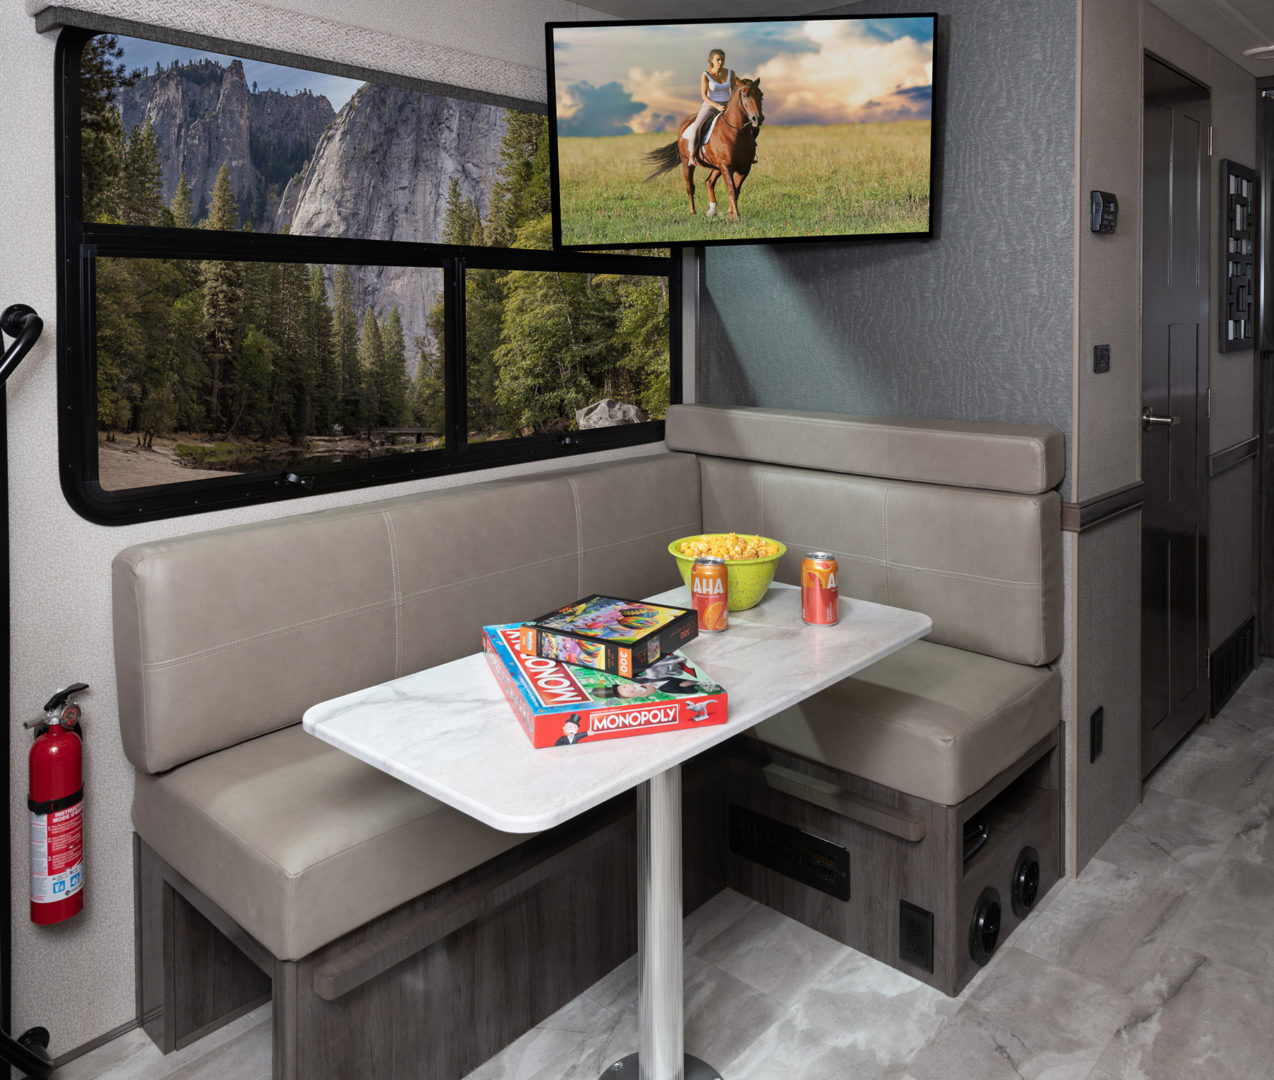 3 Dinette Admiral29 M Moonscape whiswind514 tv2 articulating MY21